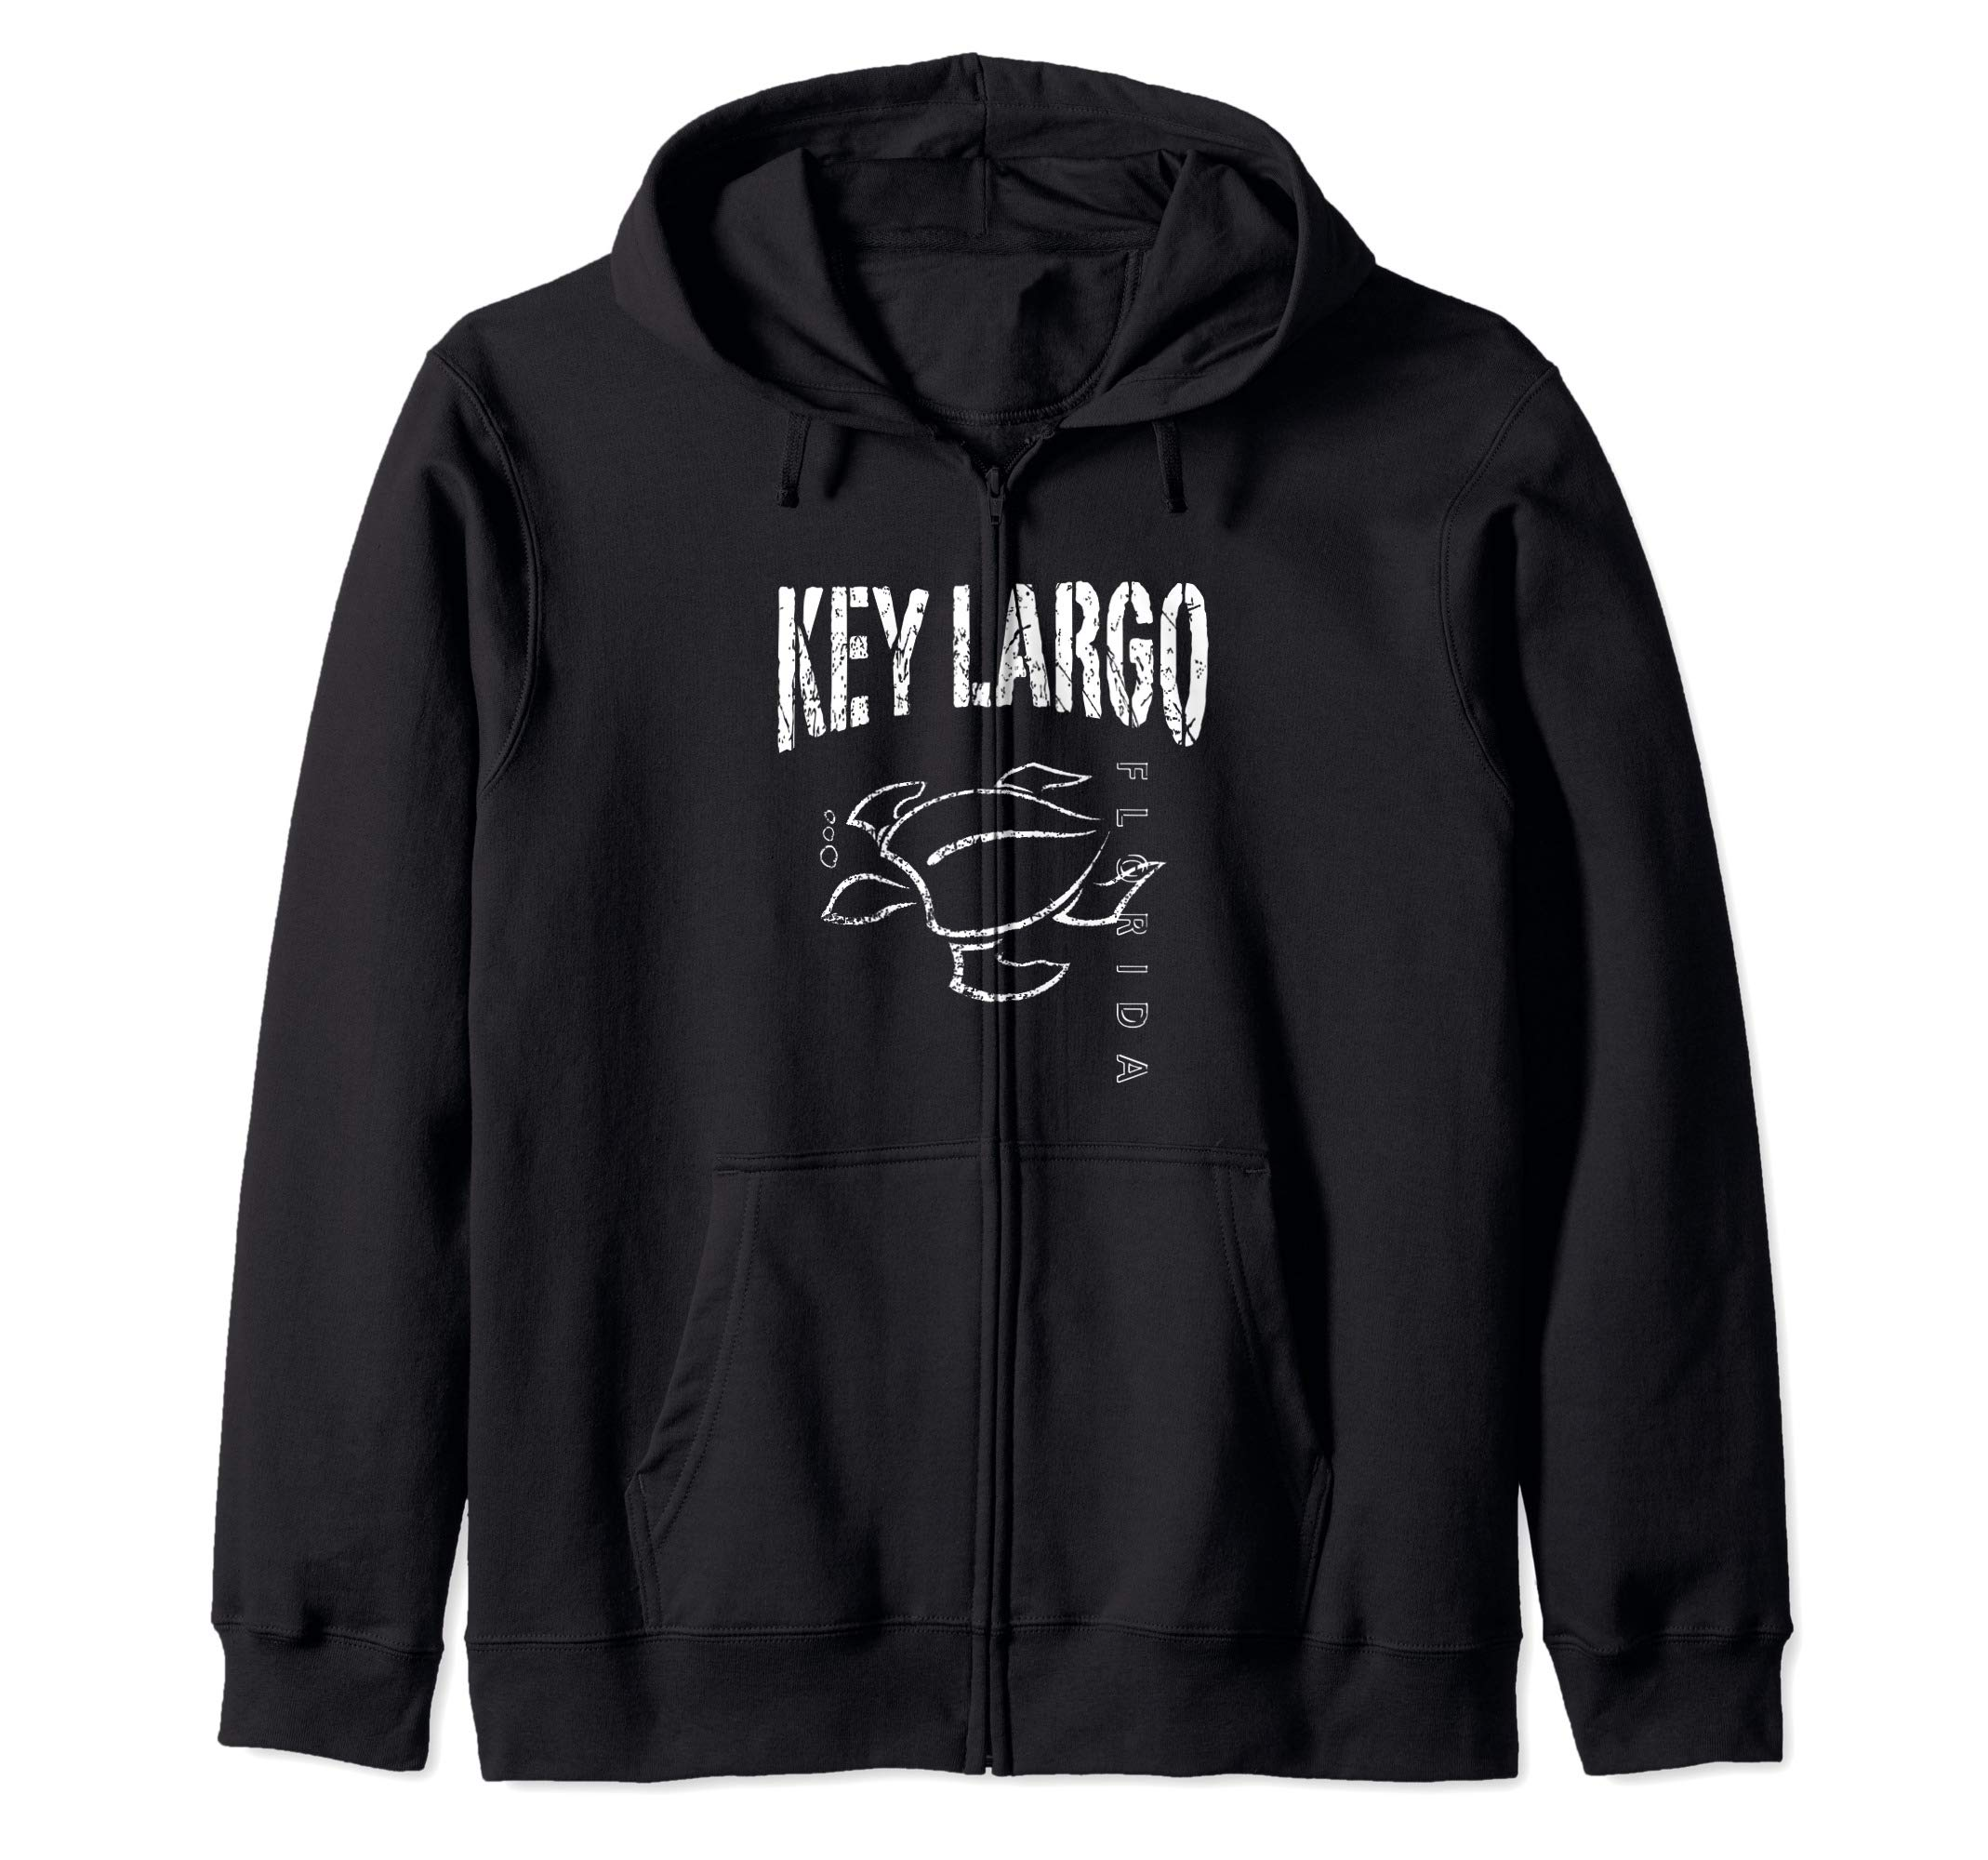 Key Largo Florida Souvenir Vacation Gift Sea Turtle Zip Hoodie by KEY LARGO Souvenir Gift Florida Sailing FL